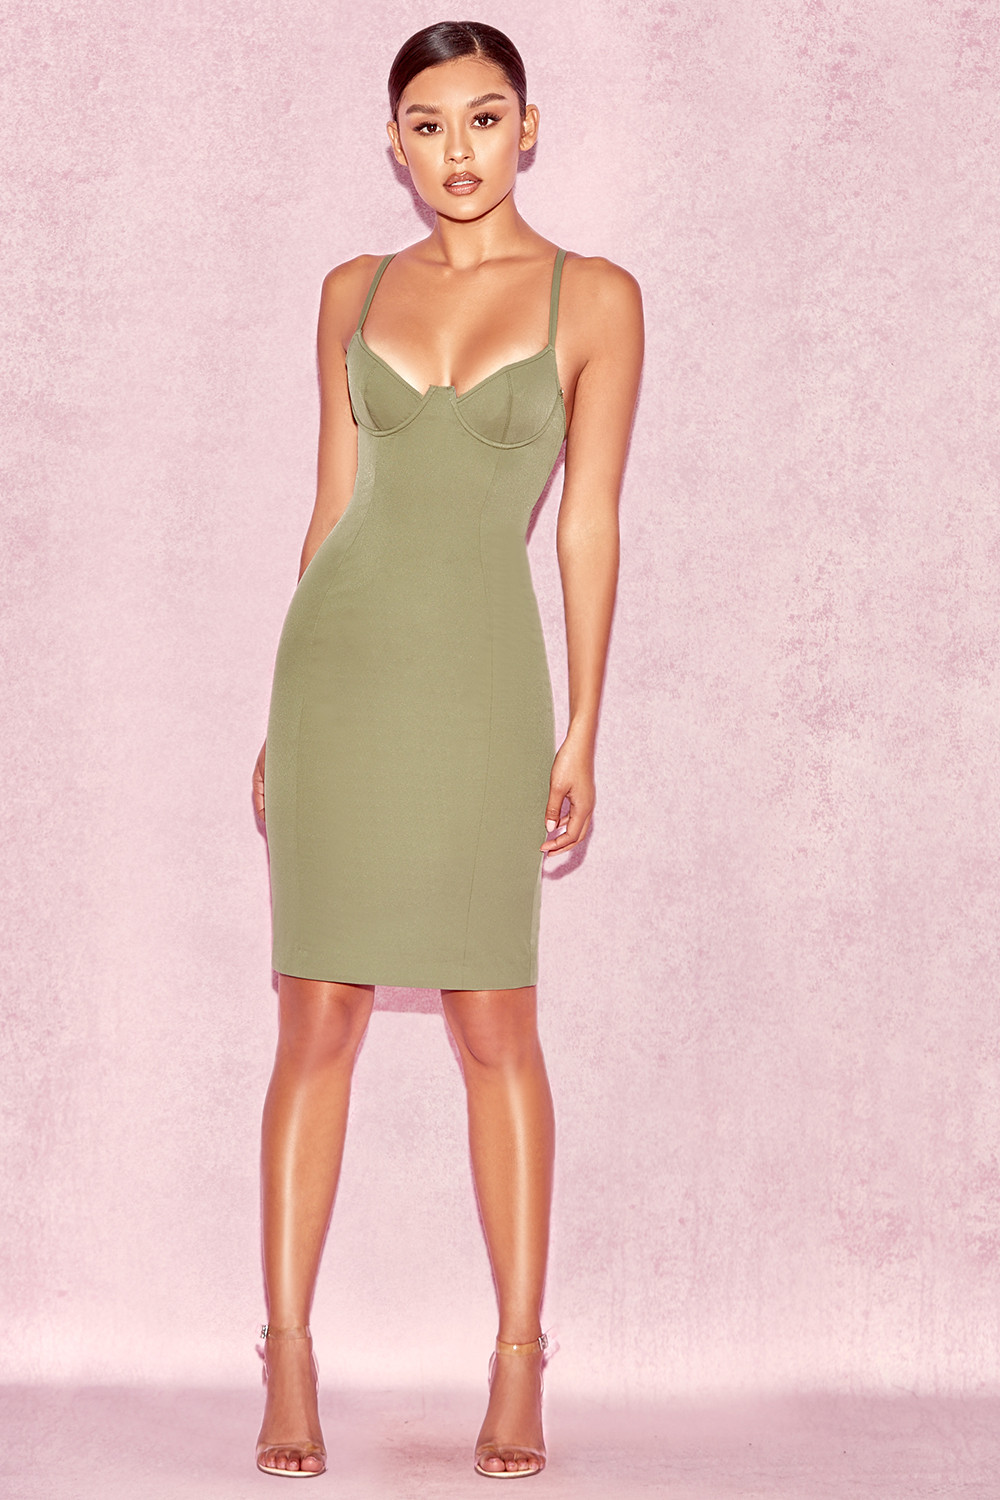 Clothing bodycon dresses 39 mallory 39 khaki underwired for Mallory material